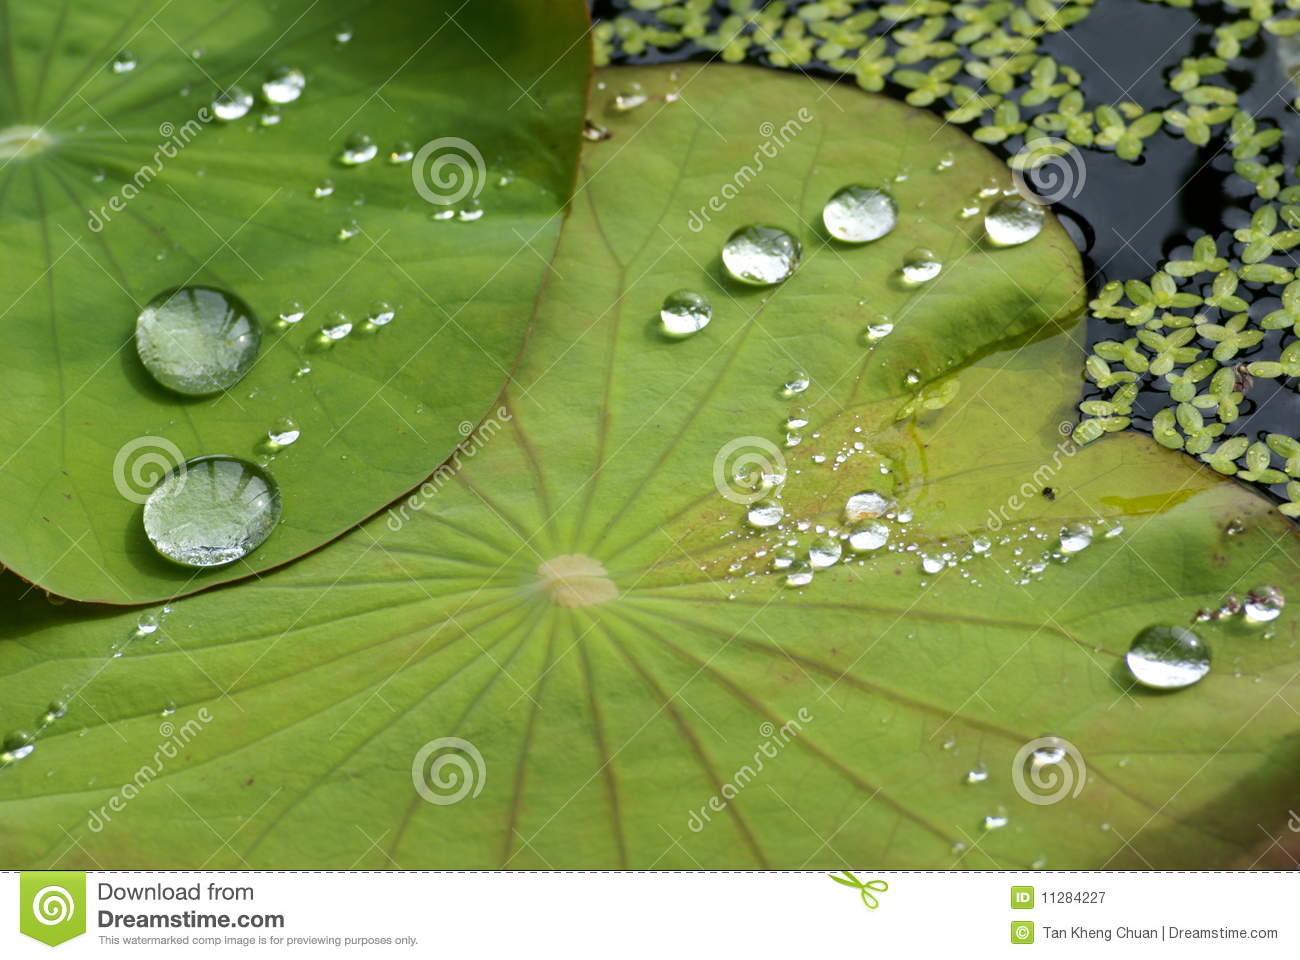 Fallen water laying on lotus leaf in a water pot Water Drop Photography On Leaf